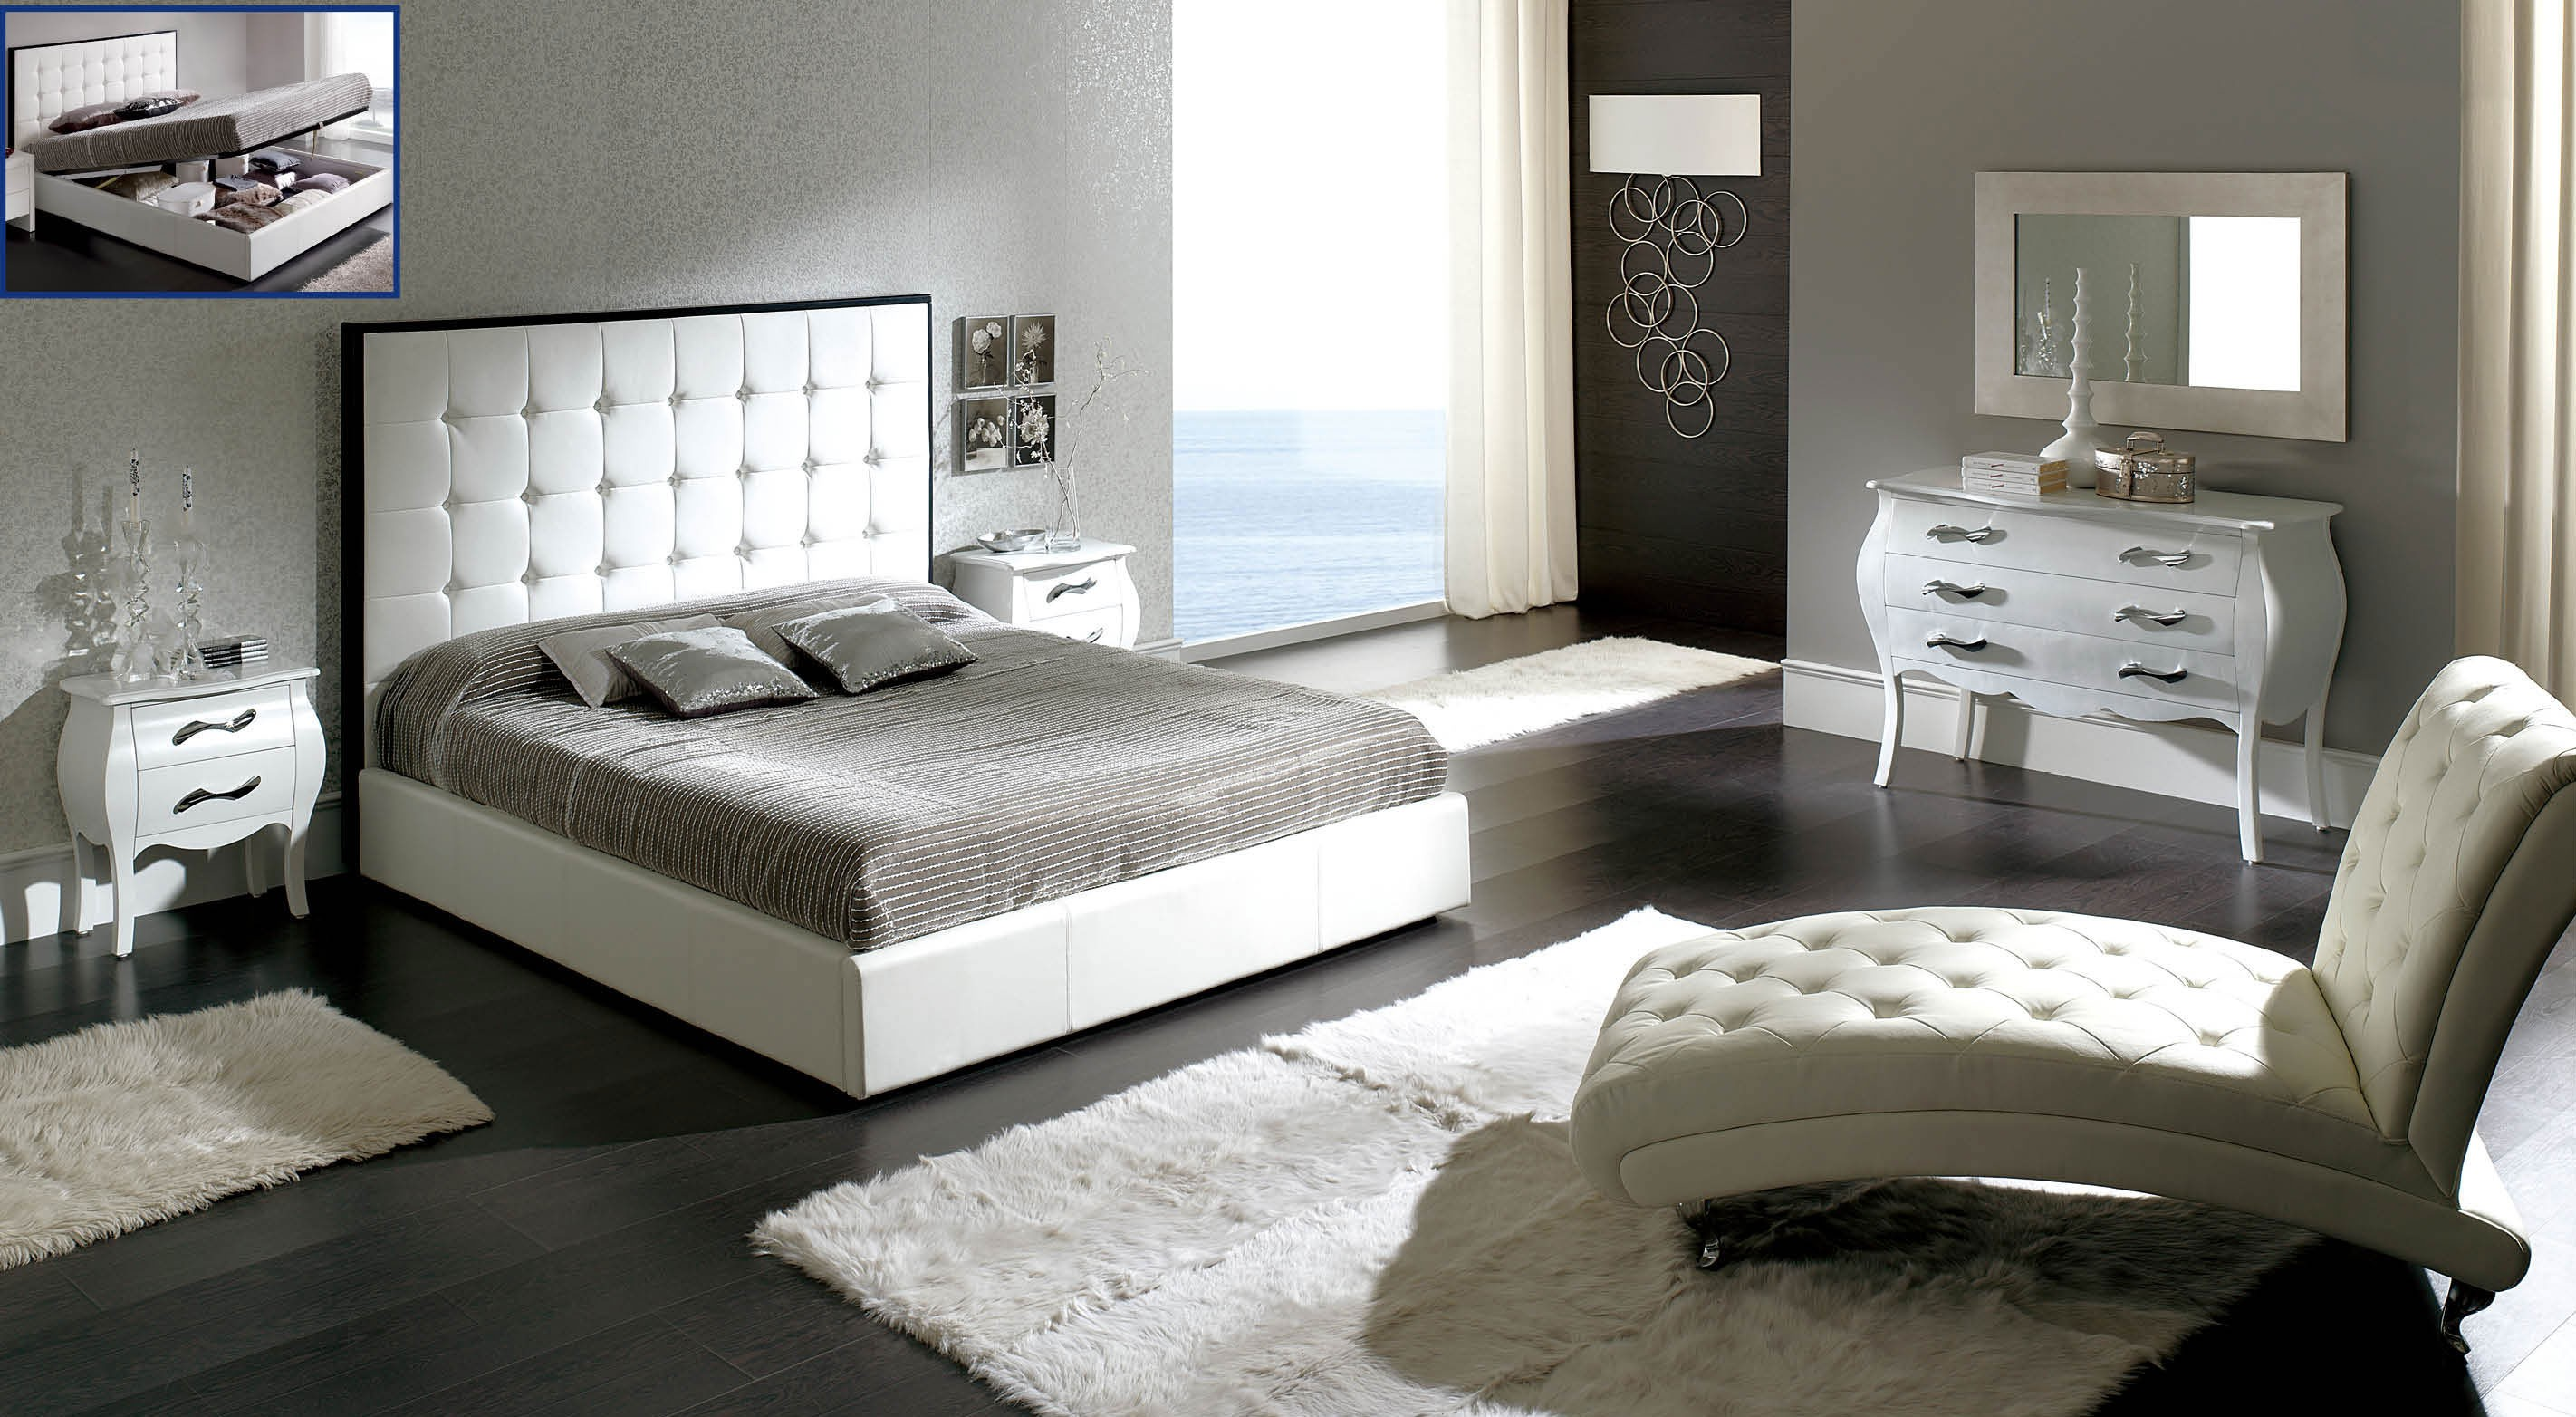 Peninsula white modern italian bedroom set n star modern for Italian bedroom furniture